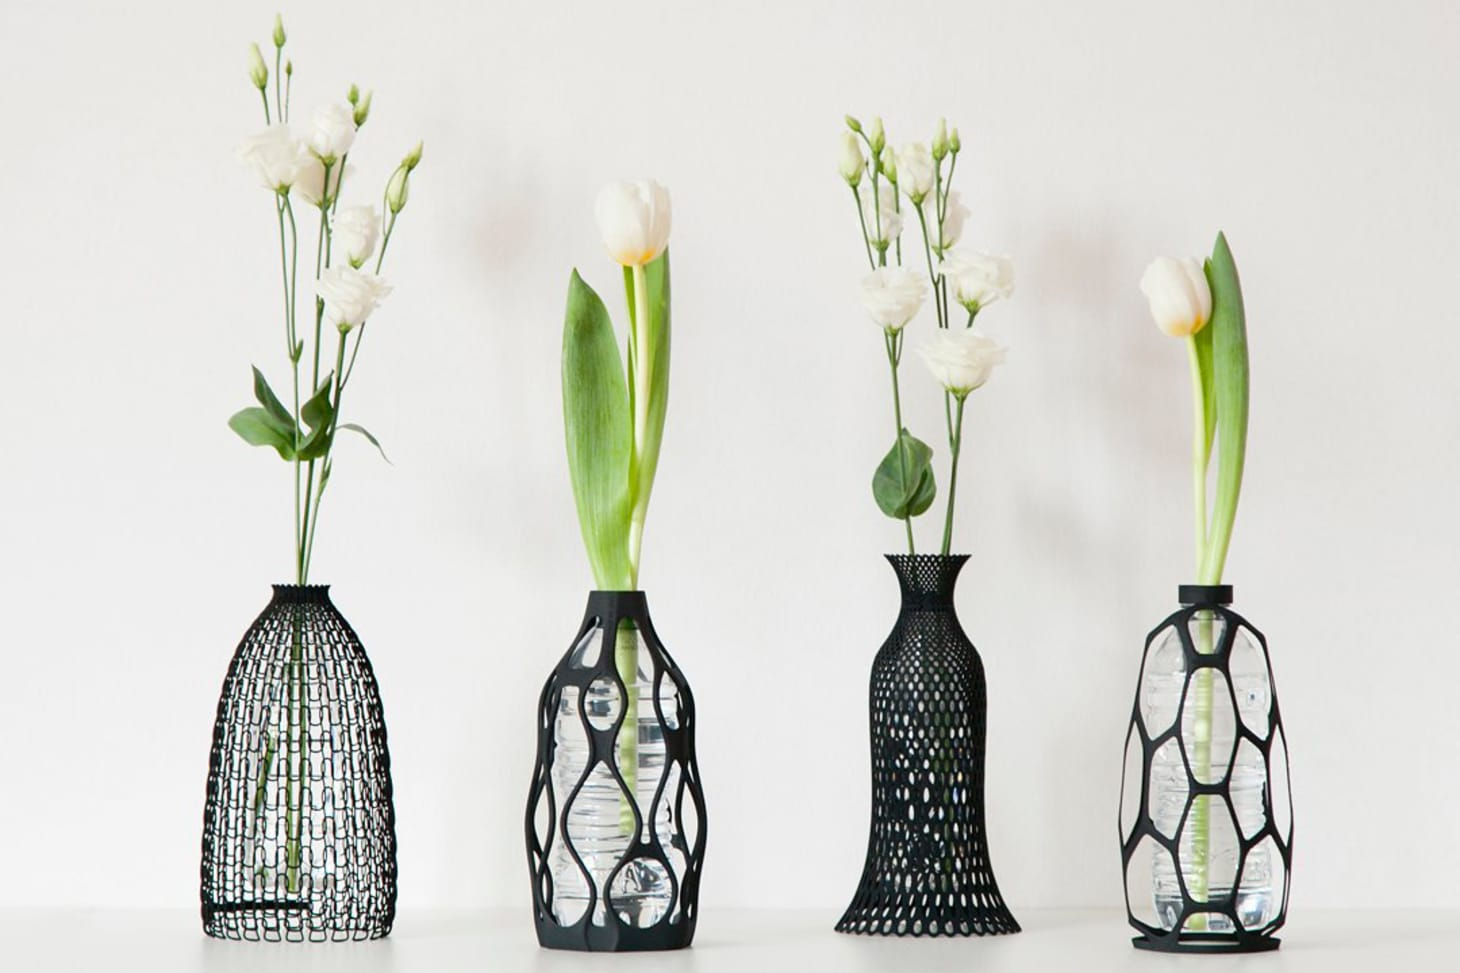 3d Printed Home Decor Products You Ll Actually Want To Buy